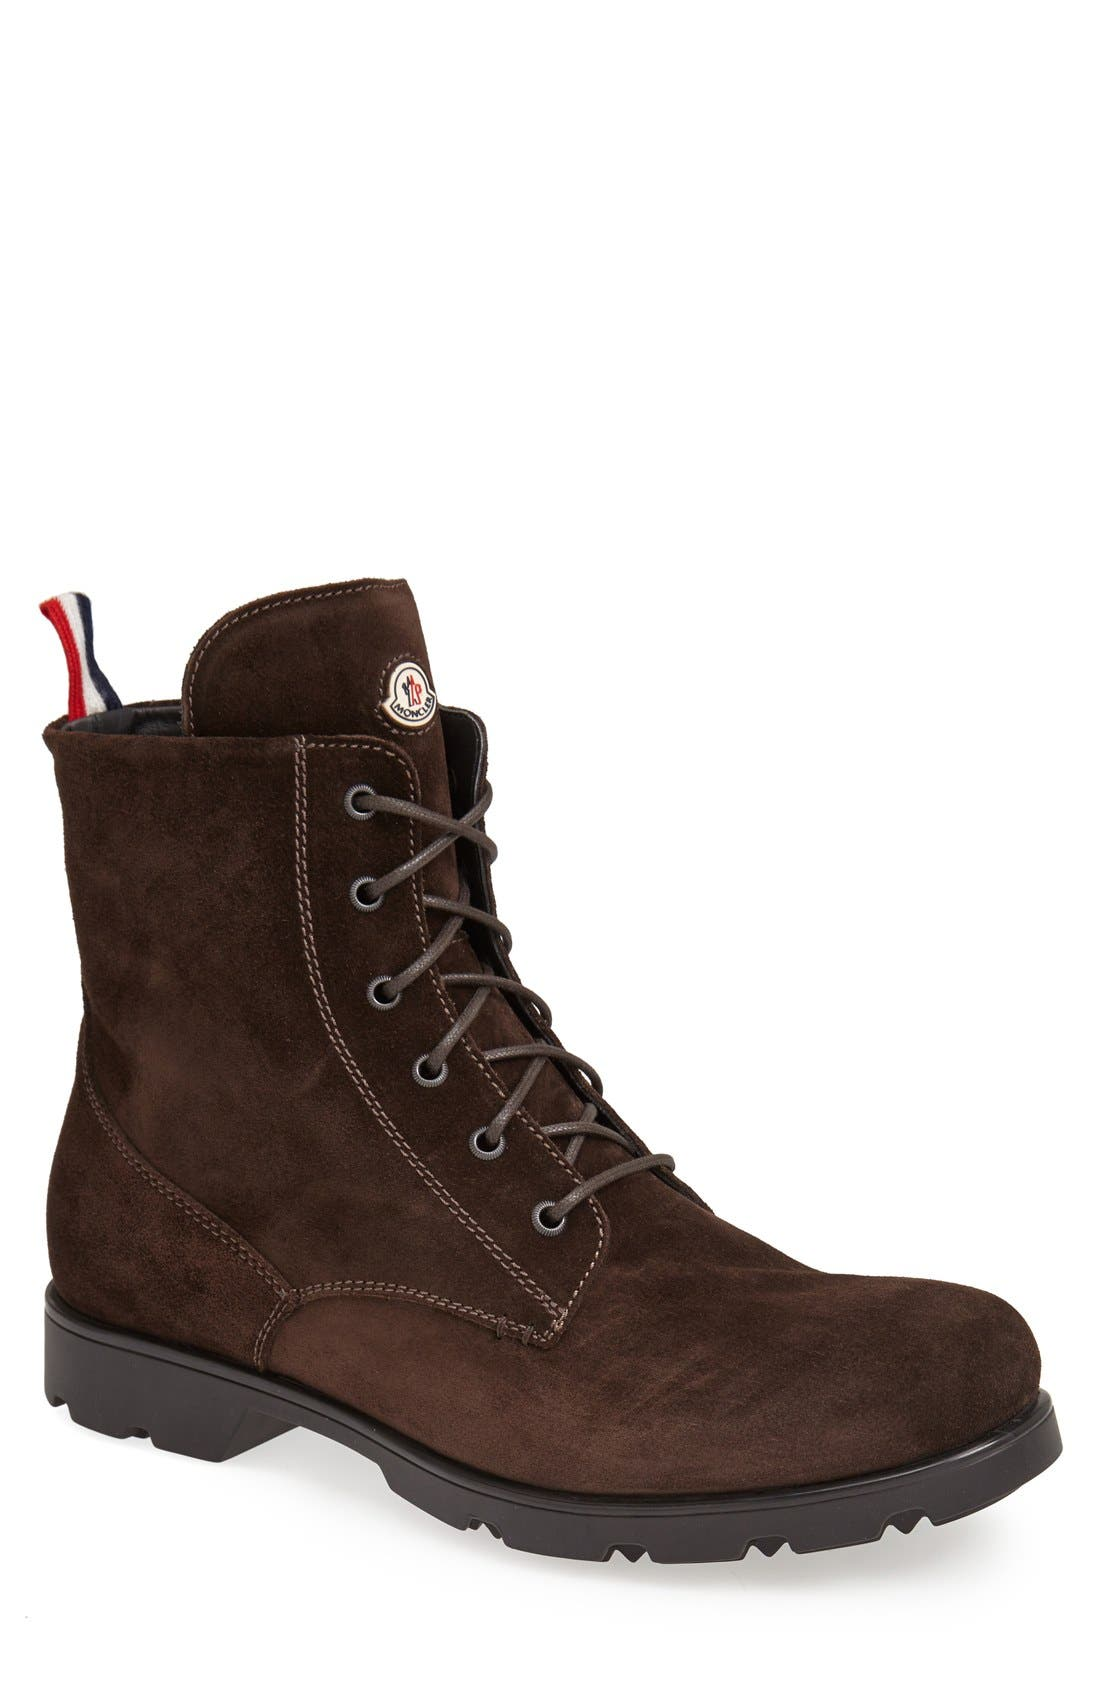 Alternate Image 1 Selected - Moncler 'Vancouver' Plain Toe Boot (Men)